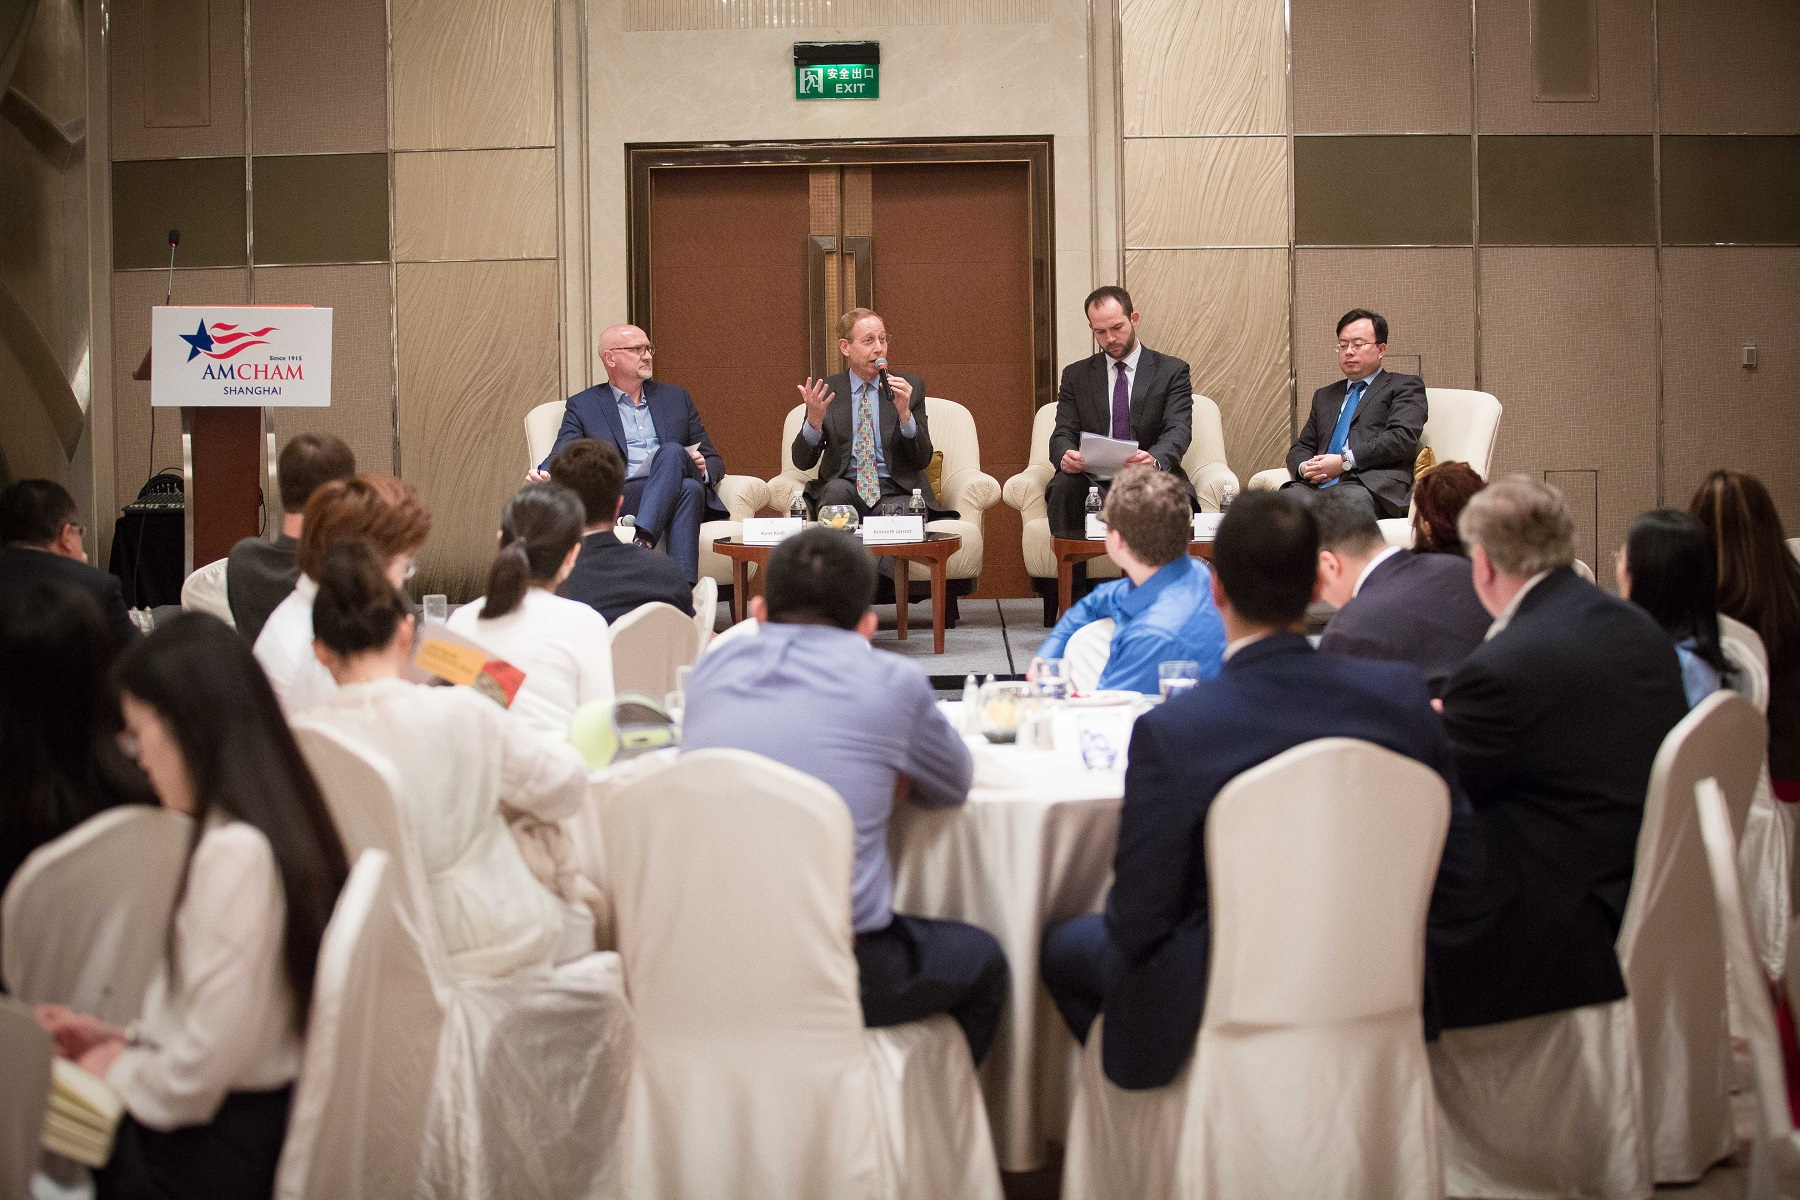 A briefing on the 100 day us china trade plan amcham amcham shanghai and the us china business council on may 25 co hosted a discussion on the recent 100 day us china trade plan and accompanying 10 point platinumwayz